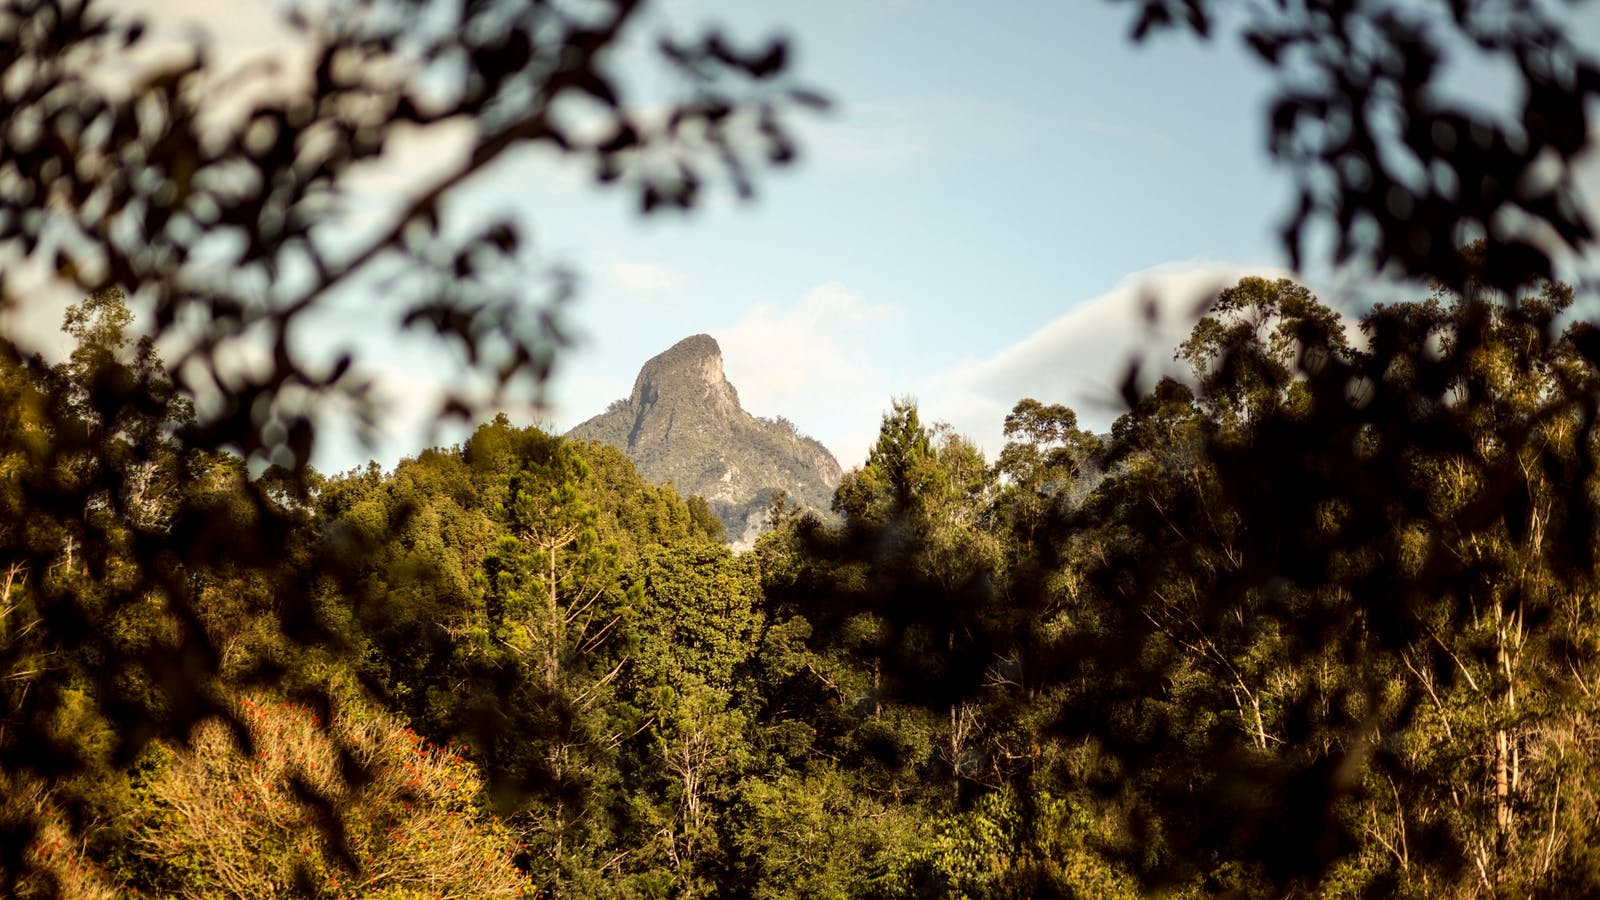 Wollumbin-Mt Warning, as seen through the trees from Mavis's Kitchen and Cabins.